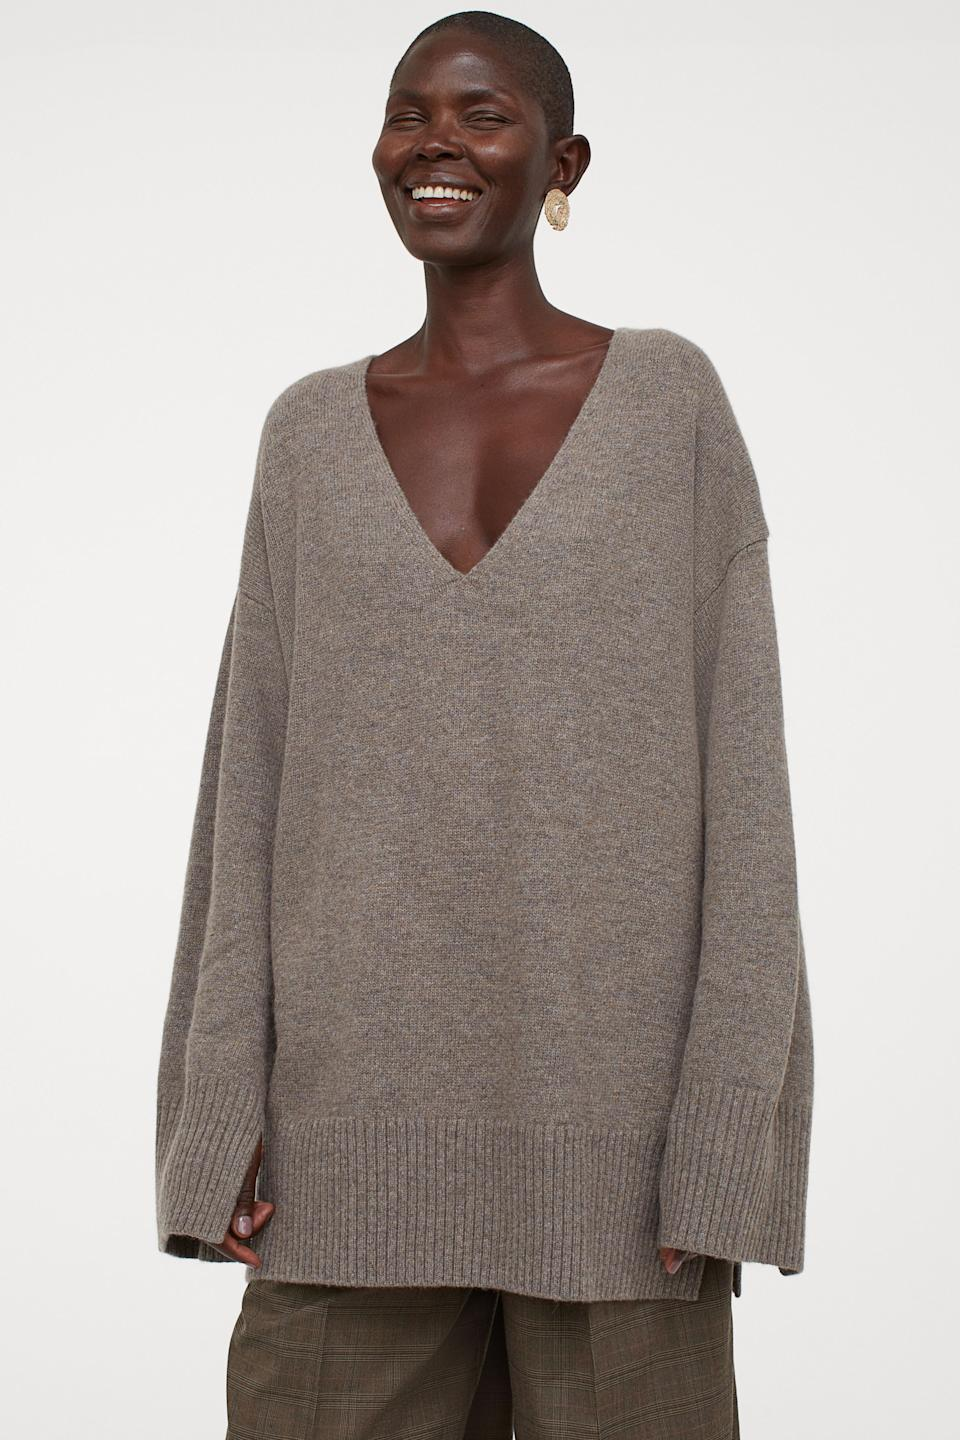 10 oversized sweaters that will keep you cozy this fall